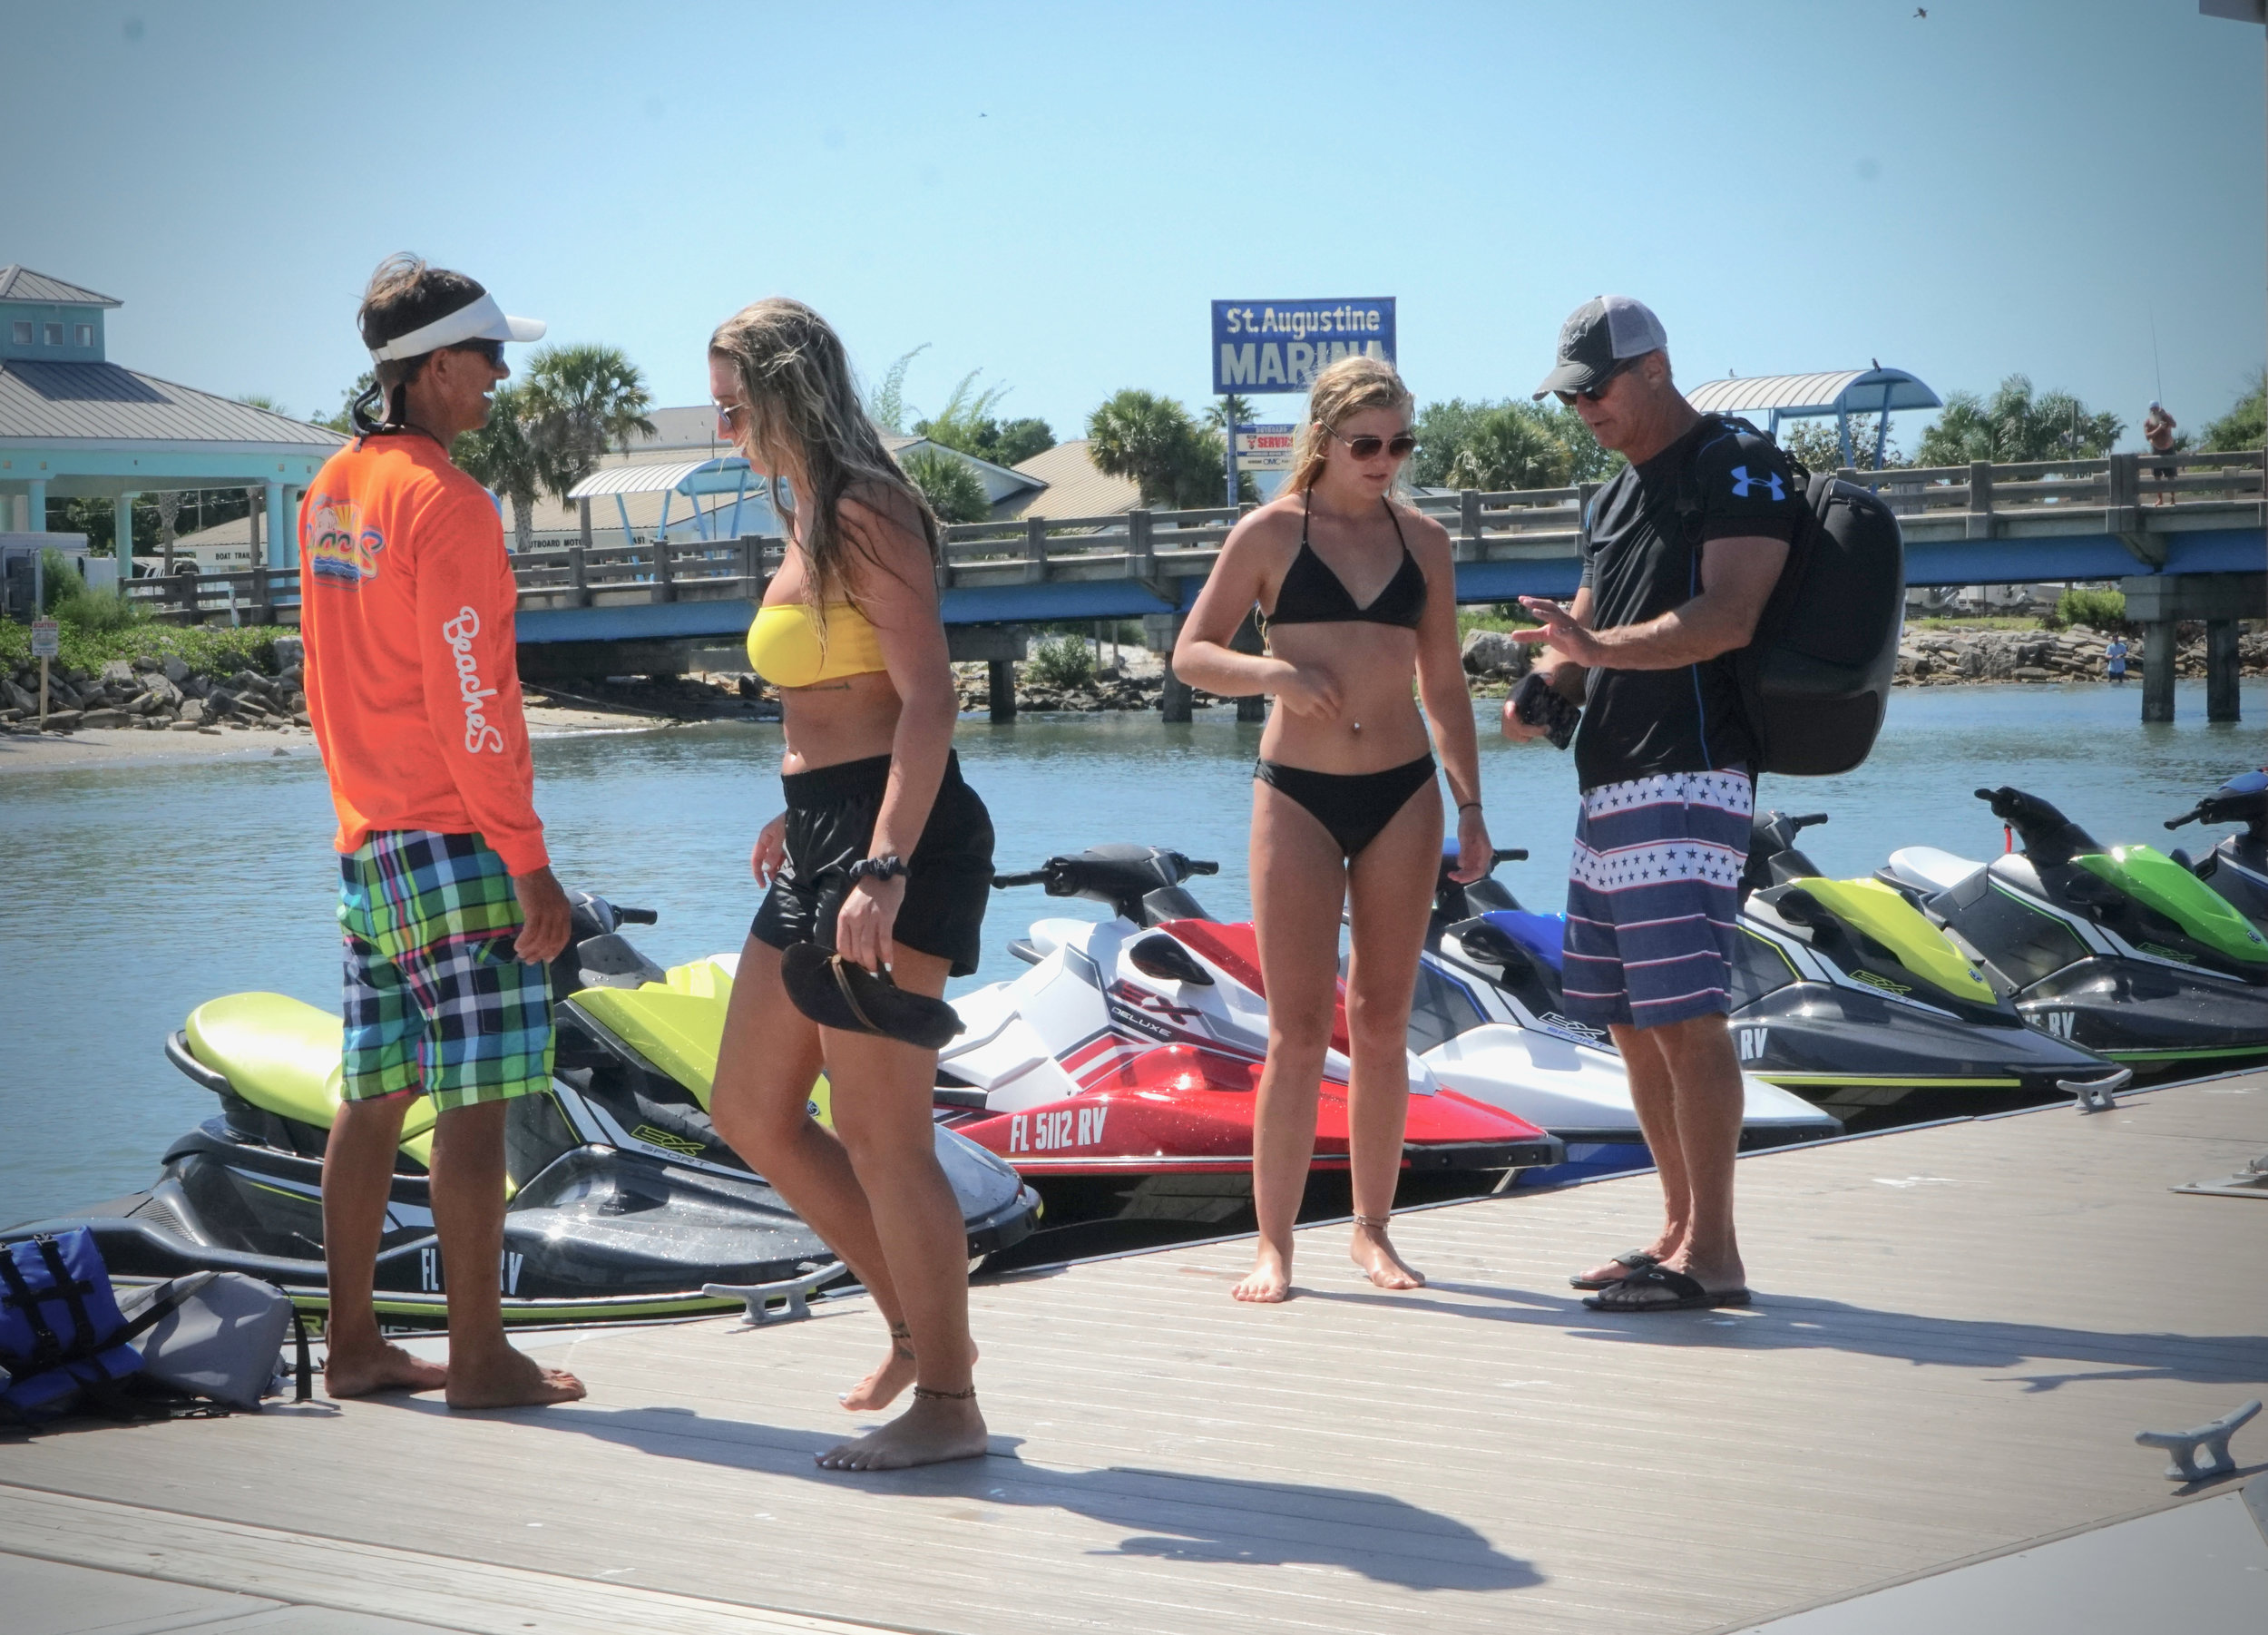 We feature quiet and responsive Yamaha jet skis